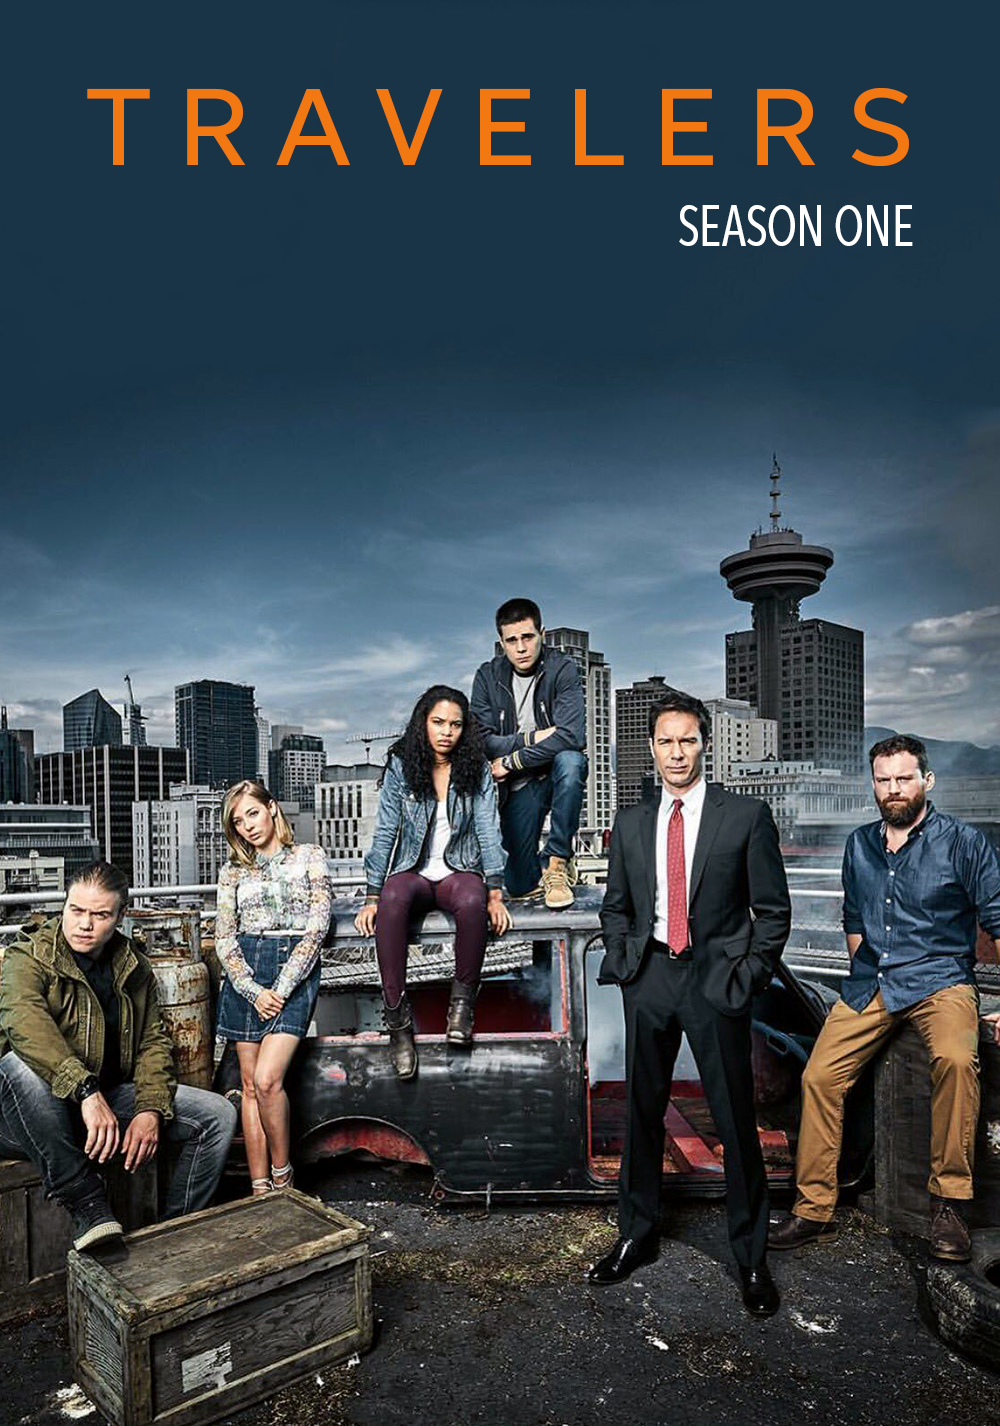 Travelers - Season 1 and 2 (New) - Mp4 x264 AC3 1080p